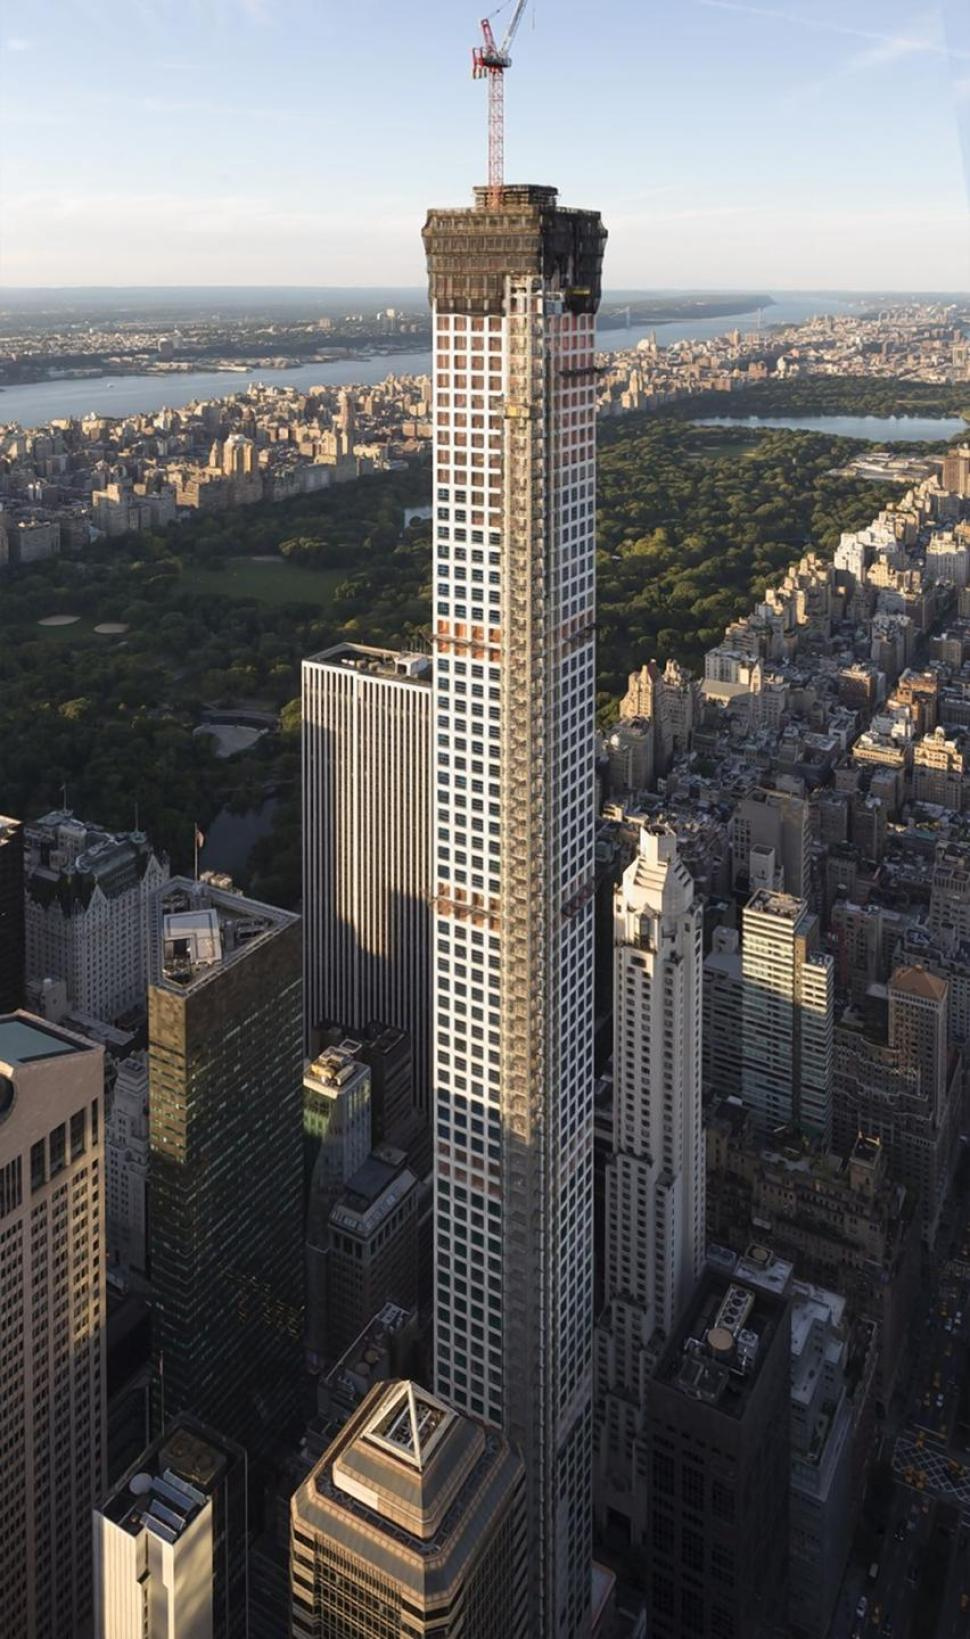 432 Park Avenue The Tallest Residential Building In Western Hemisphere